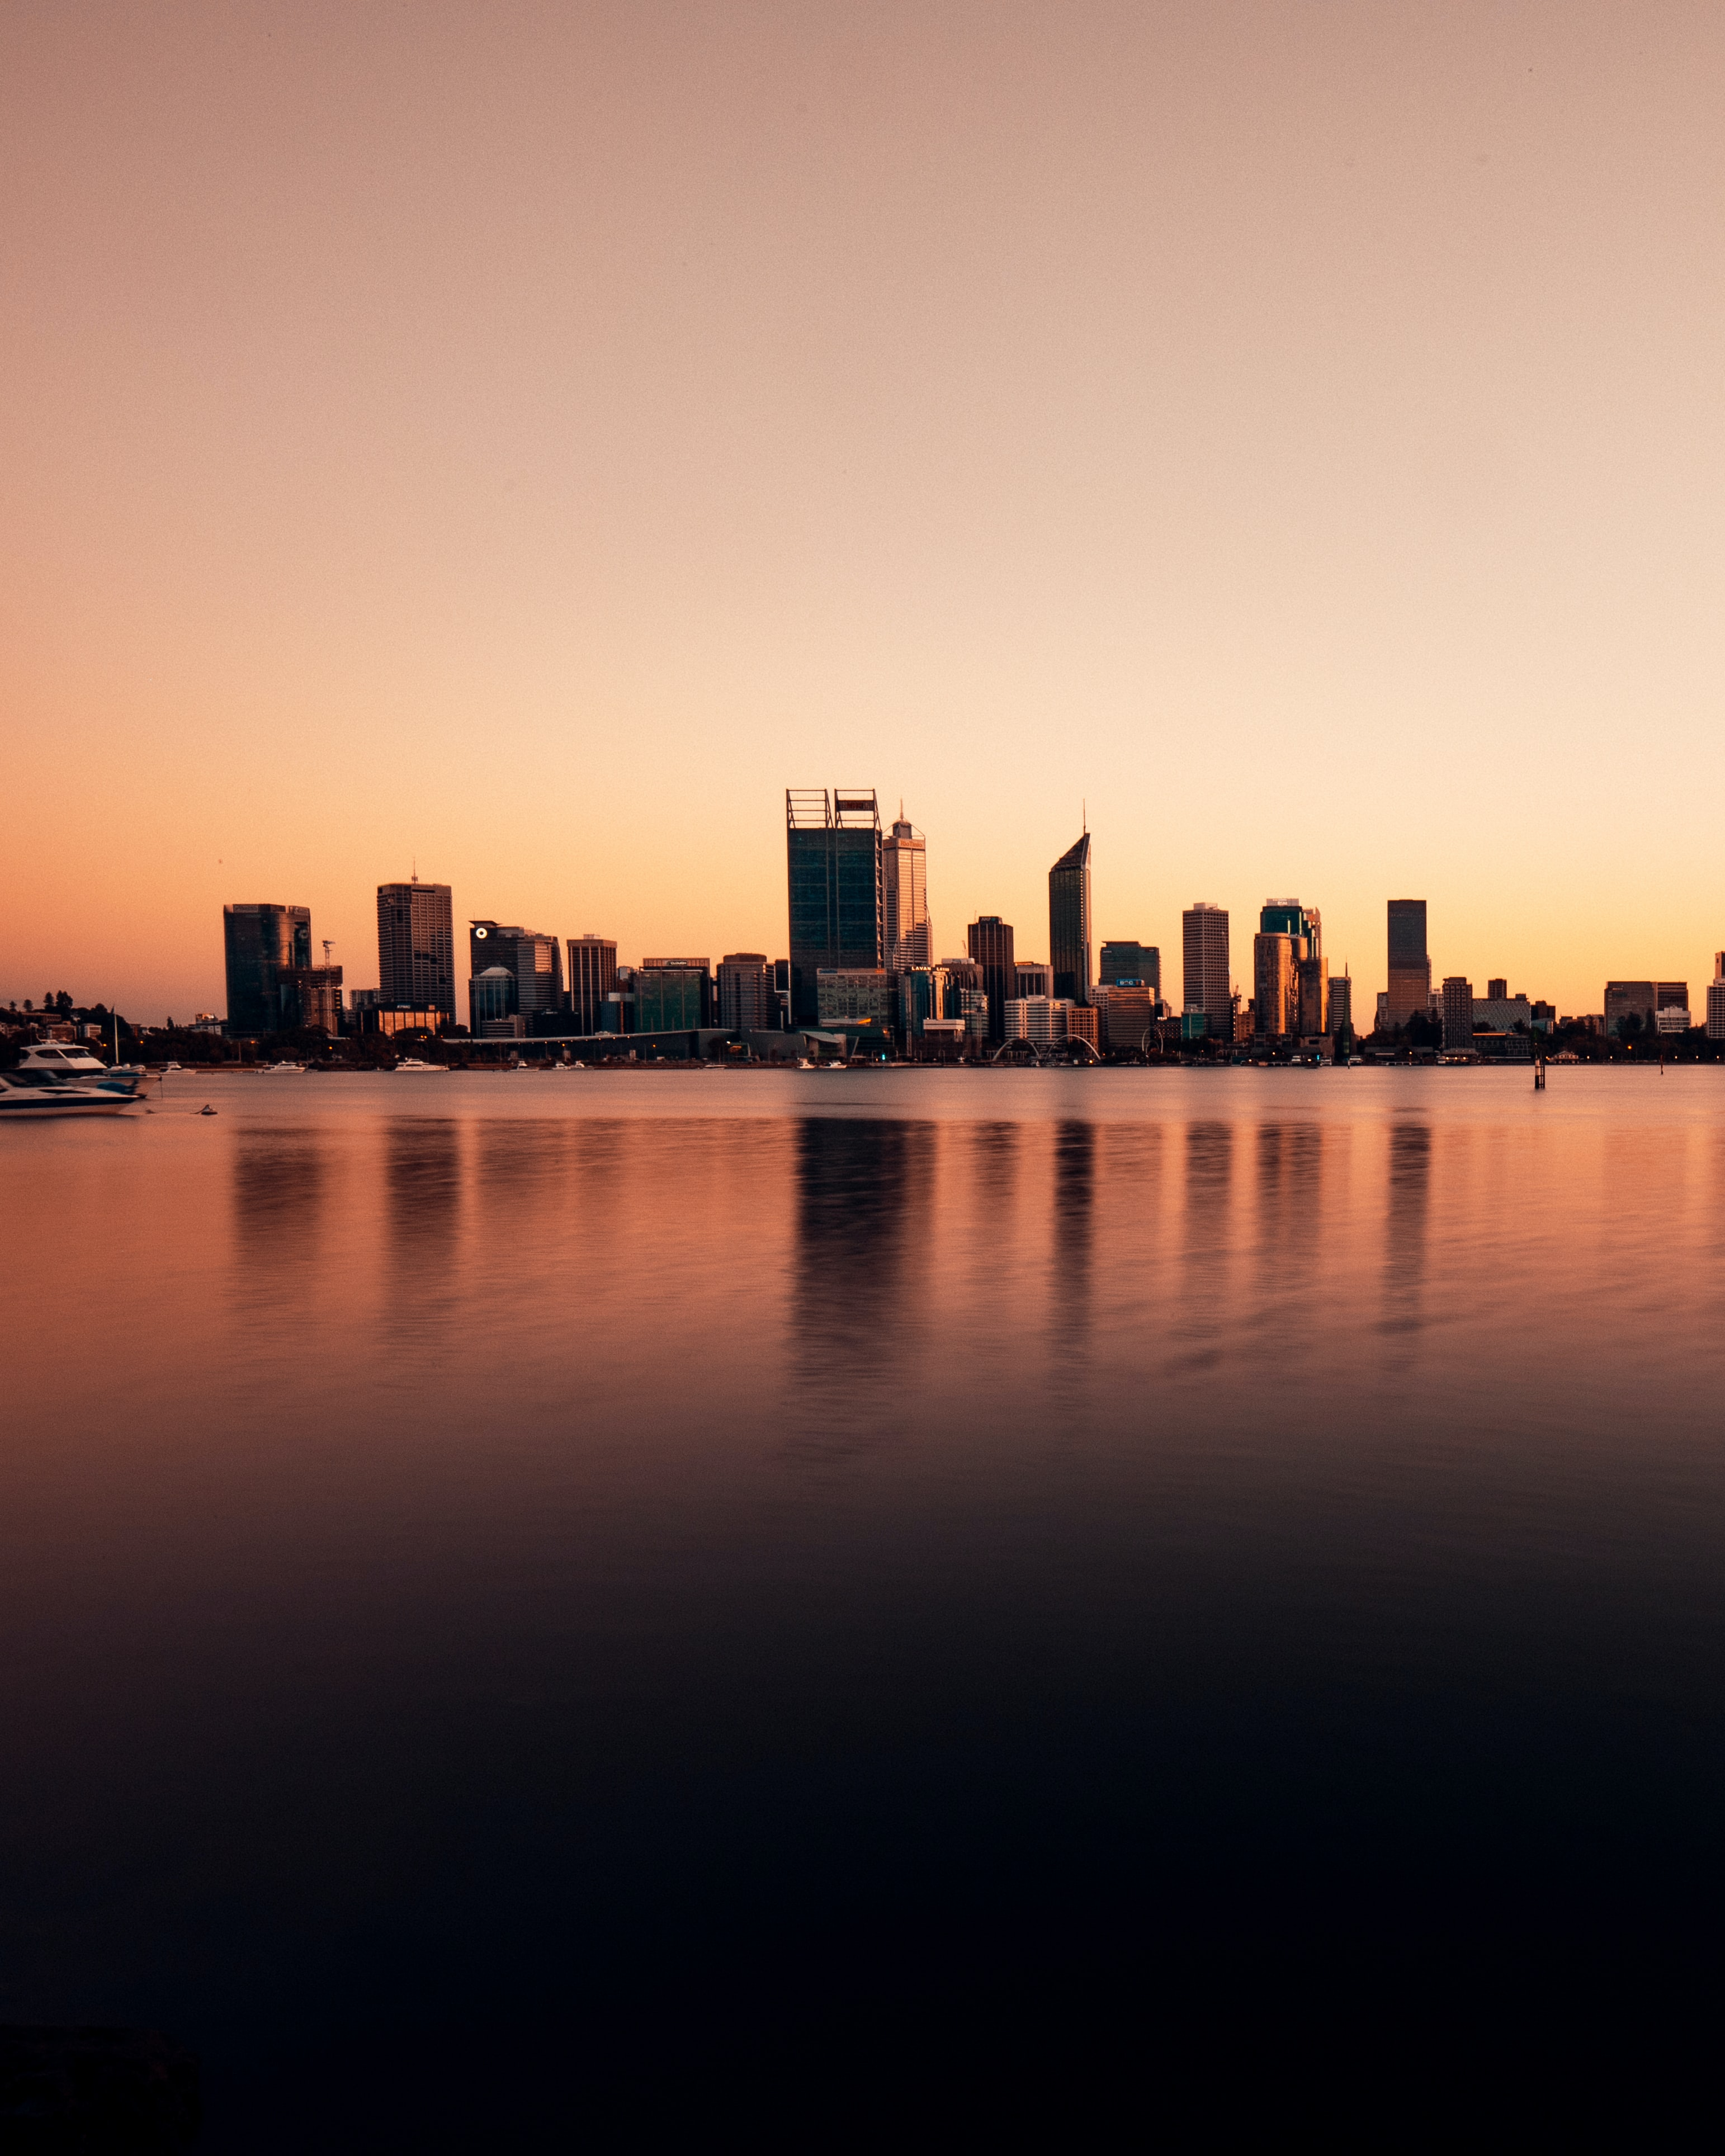 154727 download wallpaper Building, City, Reflection, Water, Sky, Dusk, Twilight, Cities screensavers and pictures for free